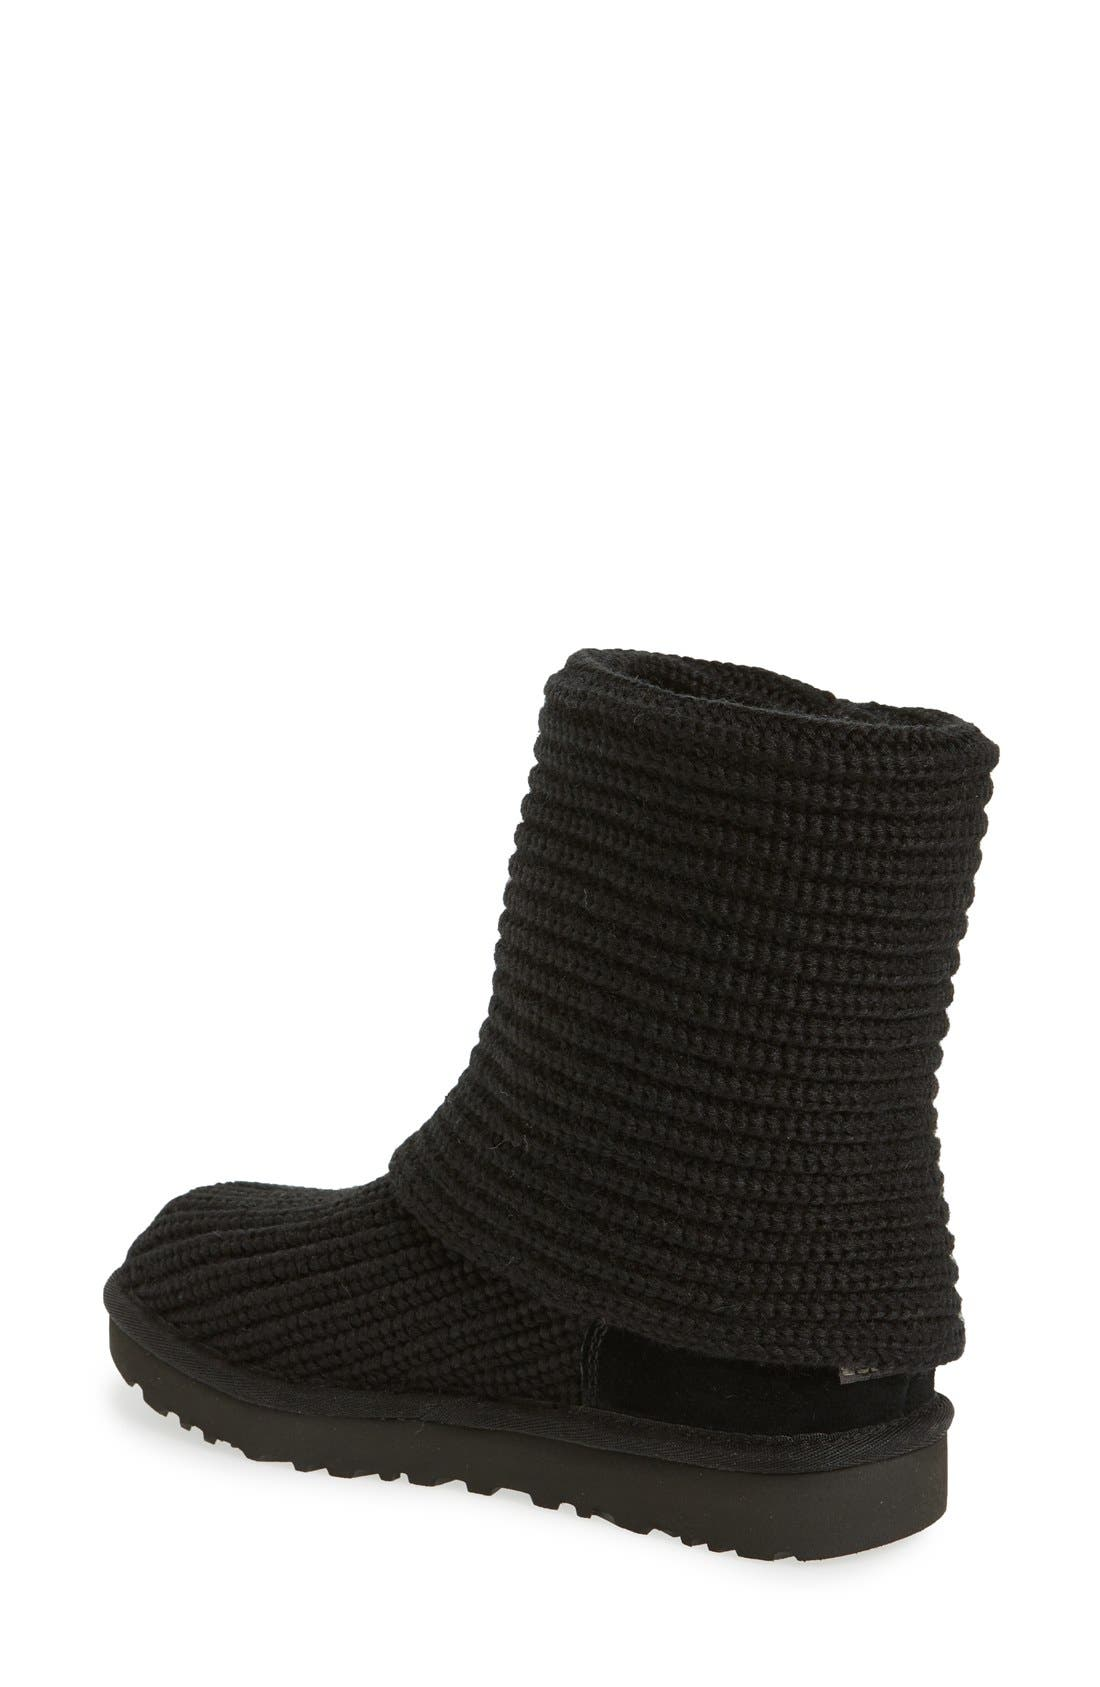 Classic Cardy II Knit Boot,                             Alternate thumbnail 2, color,                             BLACK FABRIC